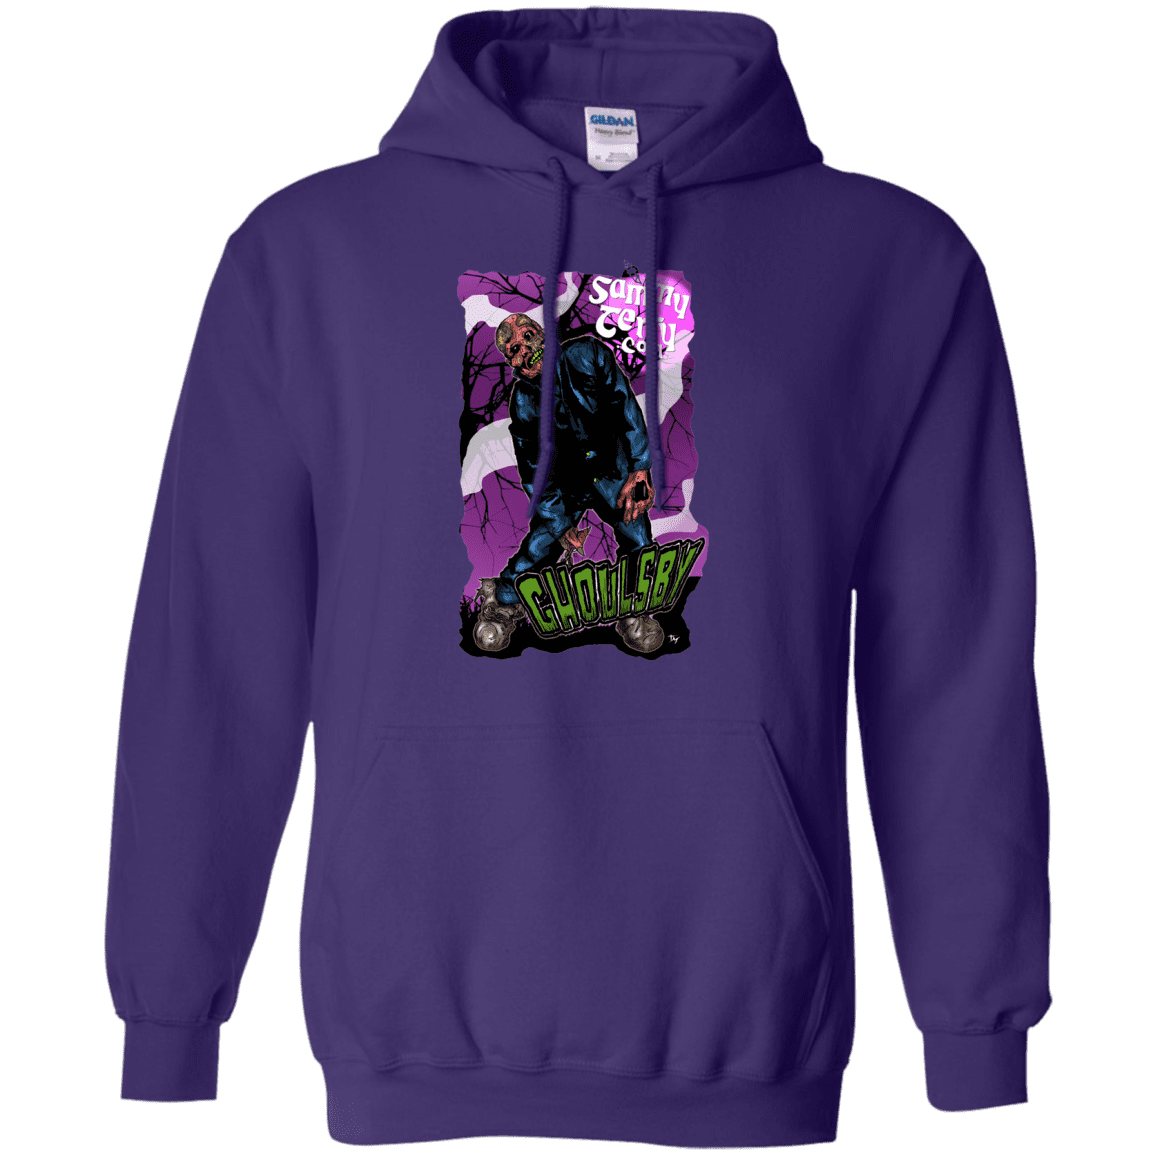 full body hoodie ghoulsby full body hoodie asstd colors sammy terry 3641